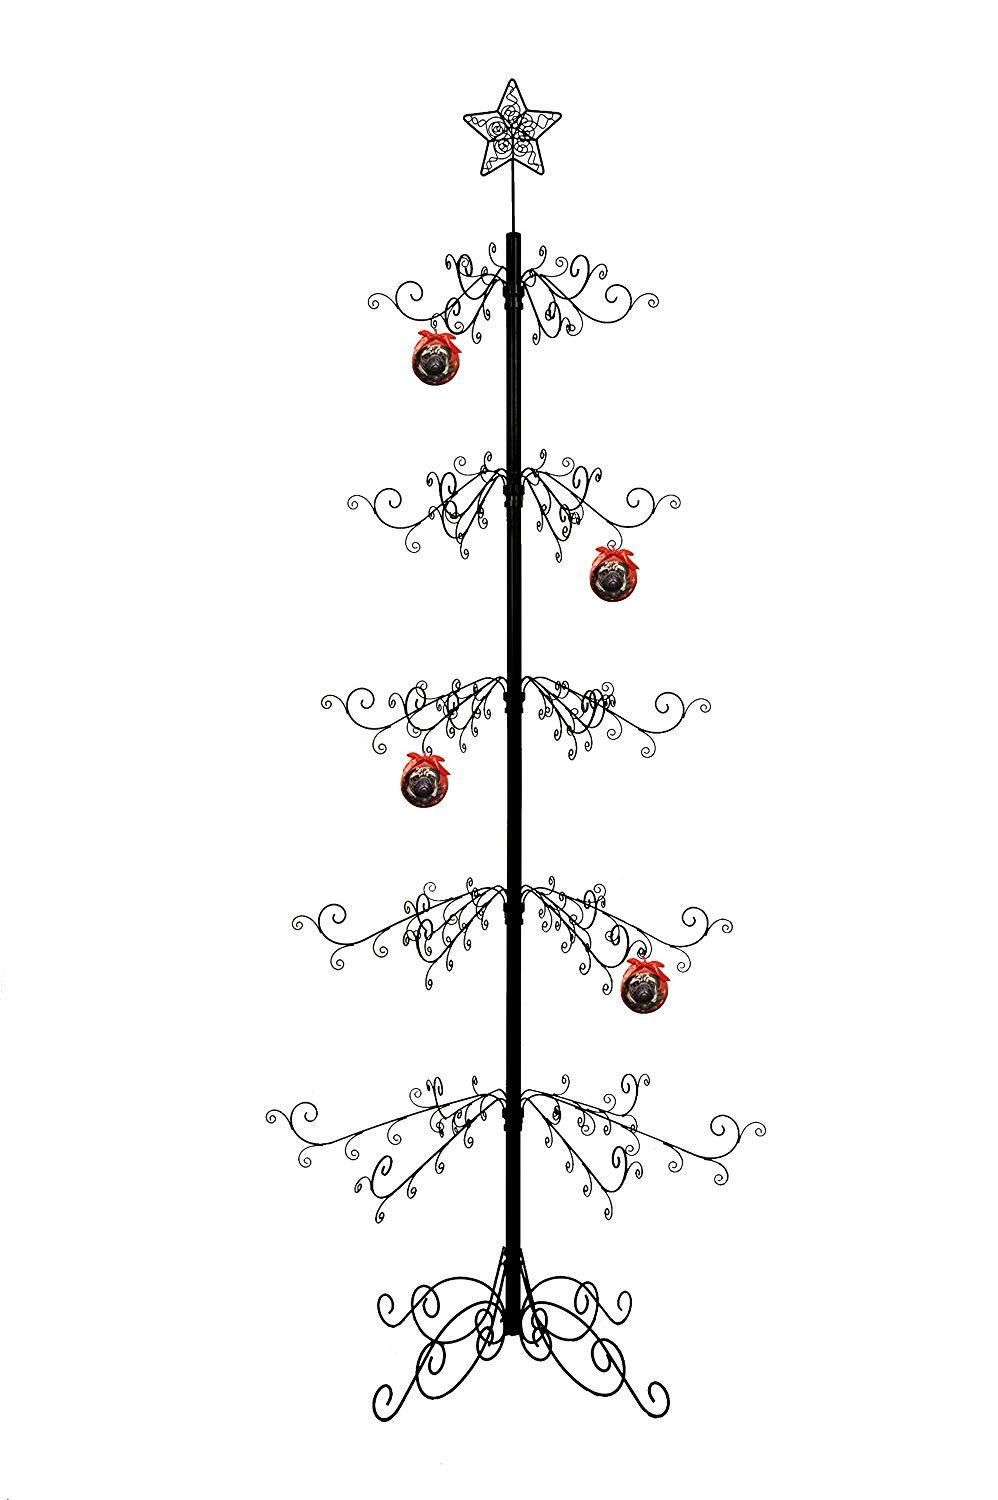 Metal Ornament Tree Display Stand Wrought Iron Christmas Trees 174 Hook 84 H Ebay Metal Ornament Tree Ornament Tree Display Metal Christmas Tree